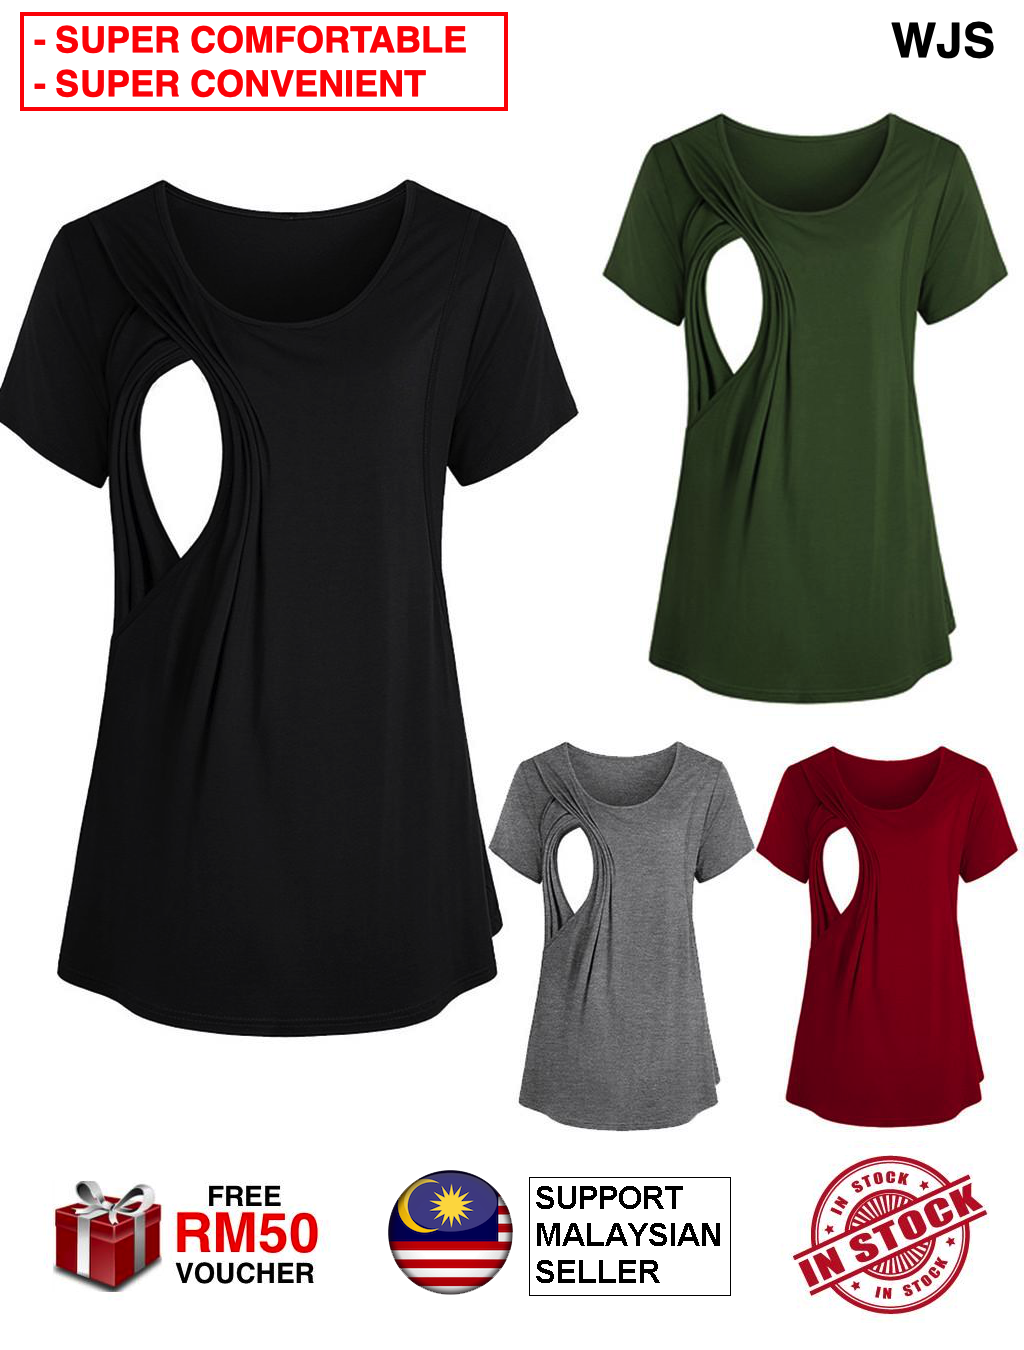 (SUPER CONVENIENT SUPER COMFORTABLE) WJS Women Maternity Blouse Nursing Blouse Breastfeeding Blouse Pregnant Shirt Nursing Top Breastfeed Blouse Baju Menyusu BLACK GREEN RED [FREE RM 50 VOUCHER]